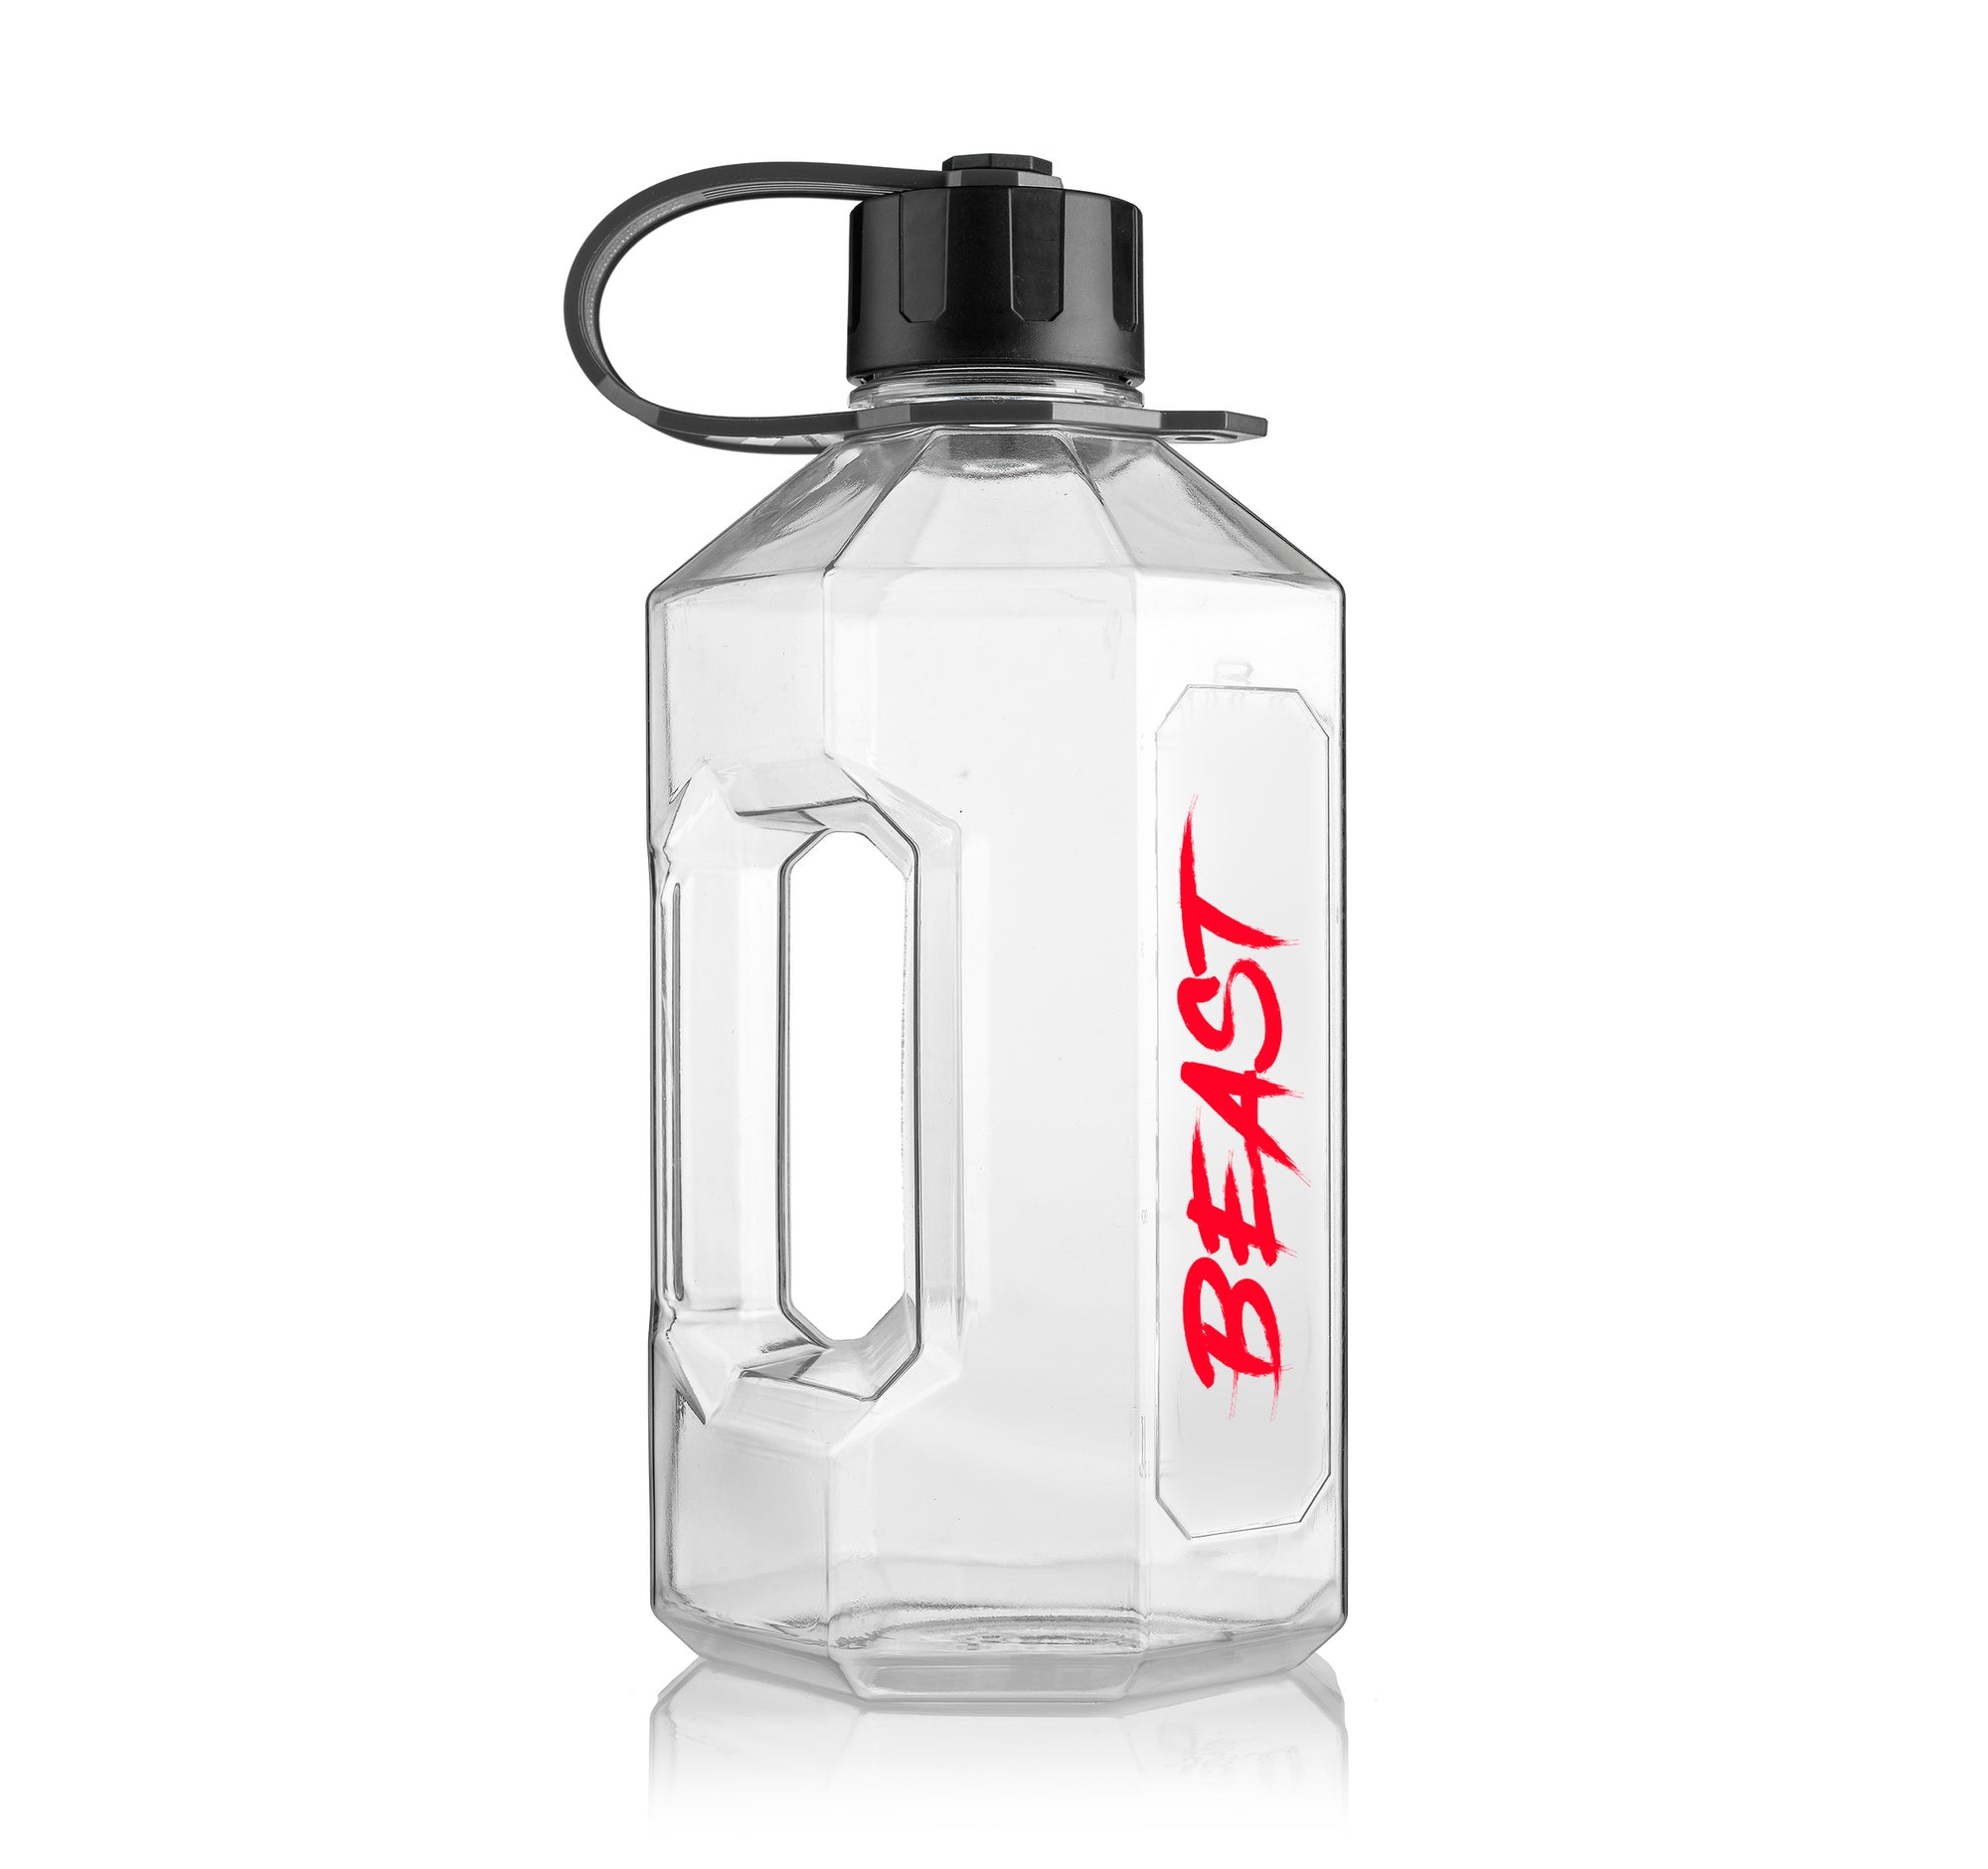 alpha bottle beast bottle jug